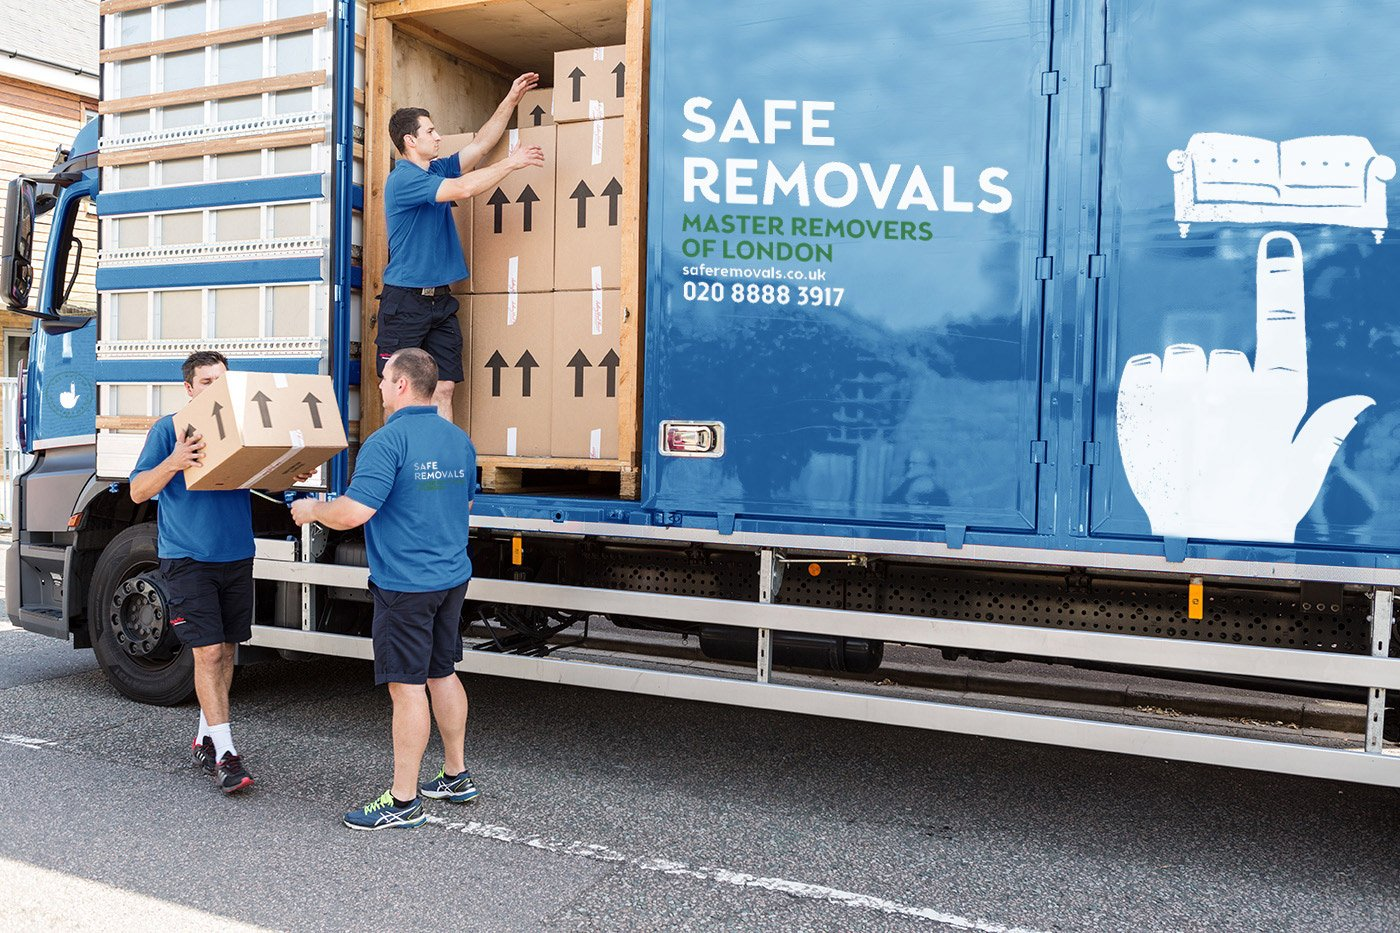 National Relocation Service from London with Safe Removals